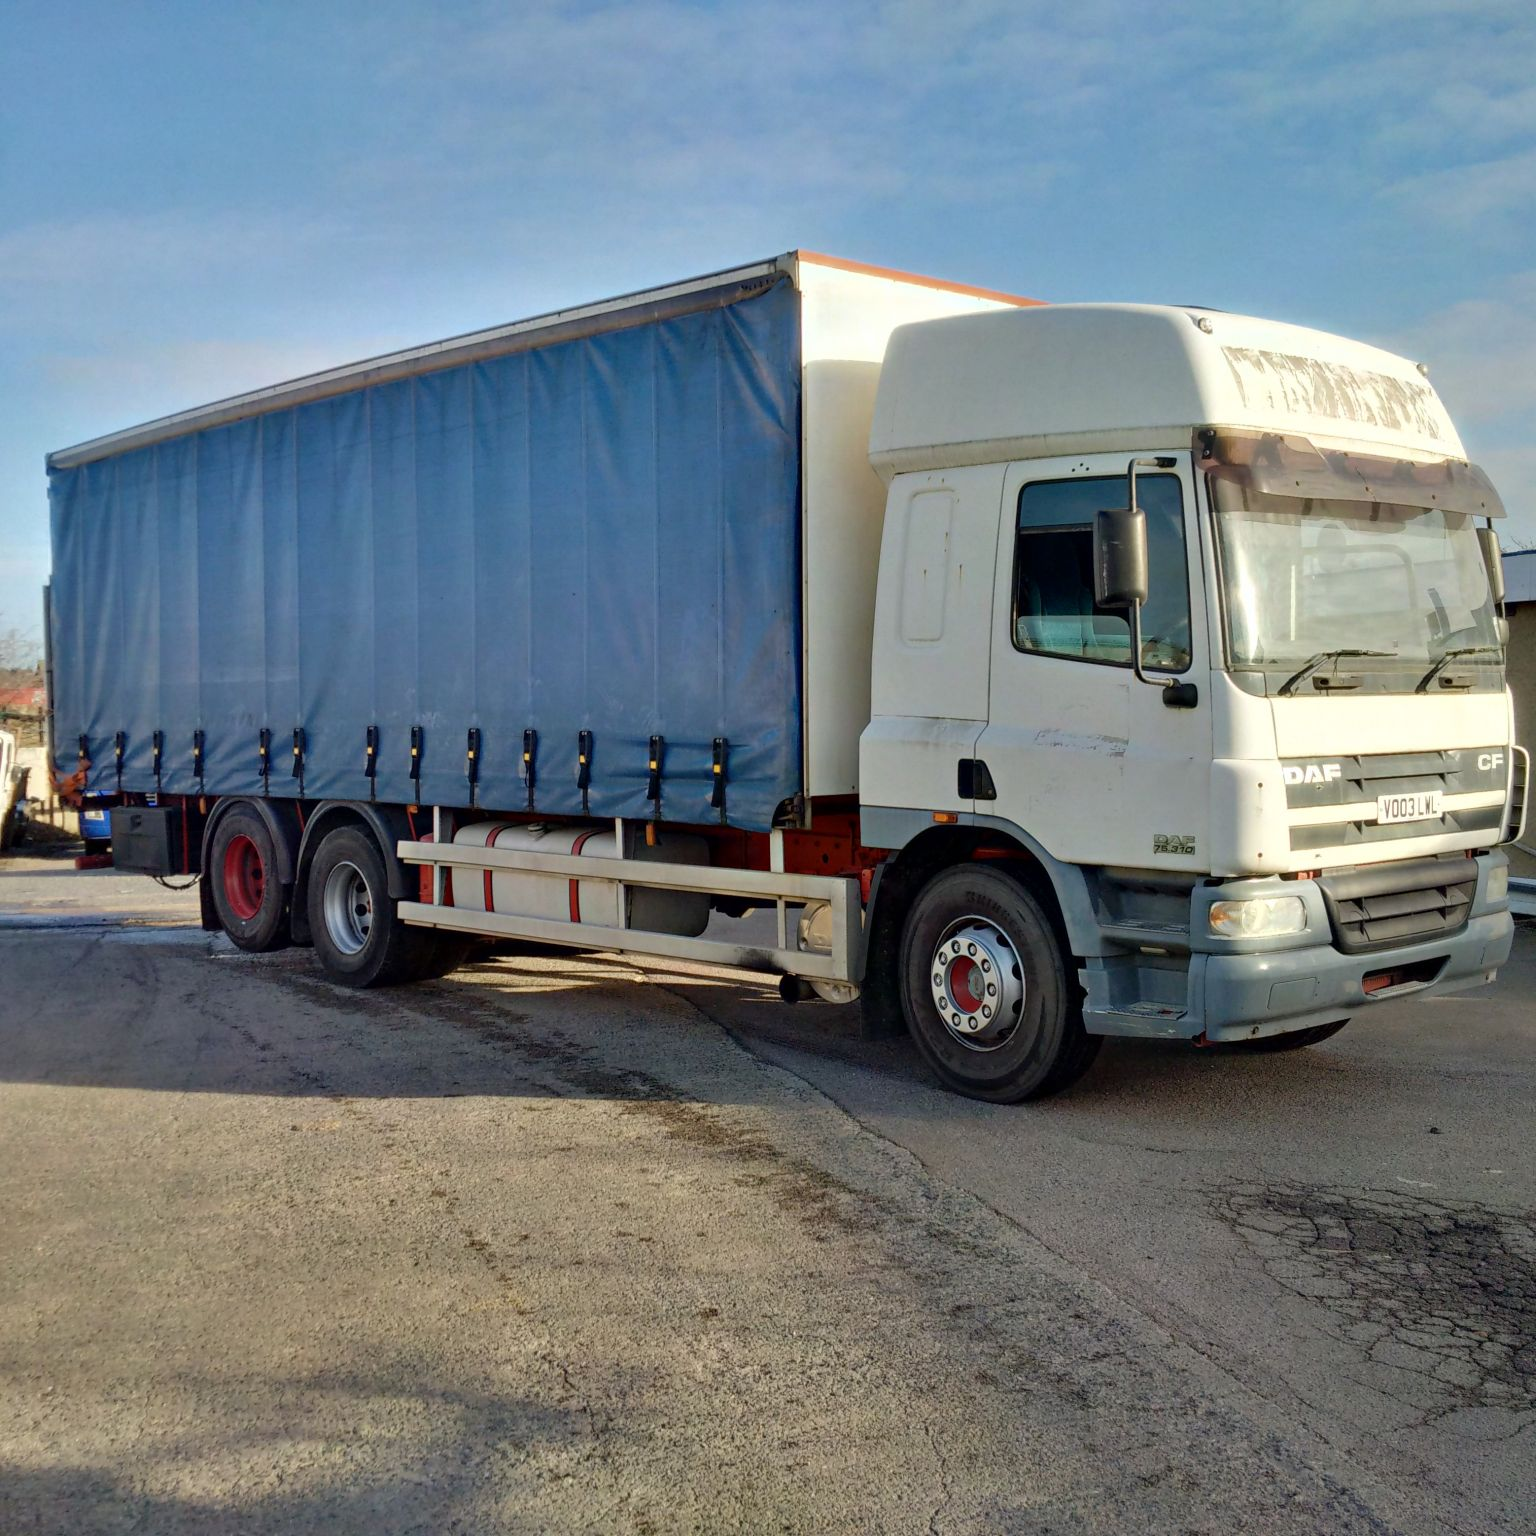 DAF CF75.310 6X2 10 tyres 26 Ton curtainsider with tail lift.